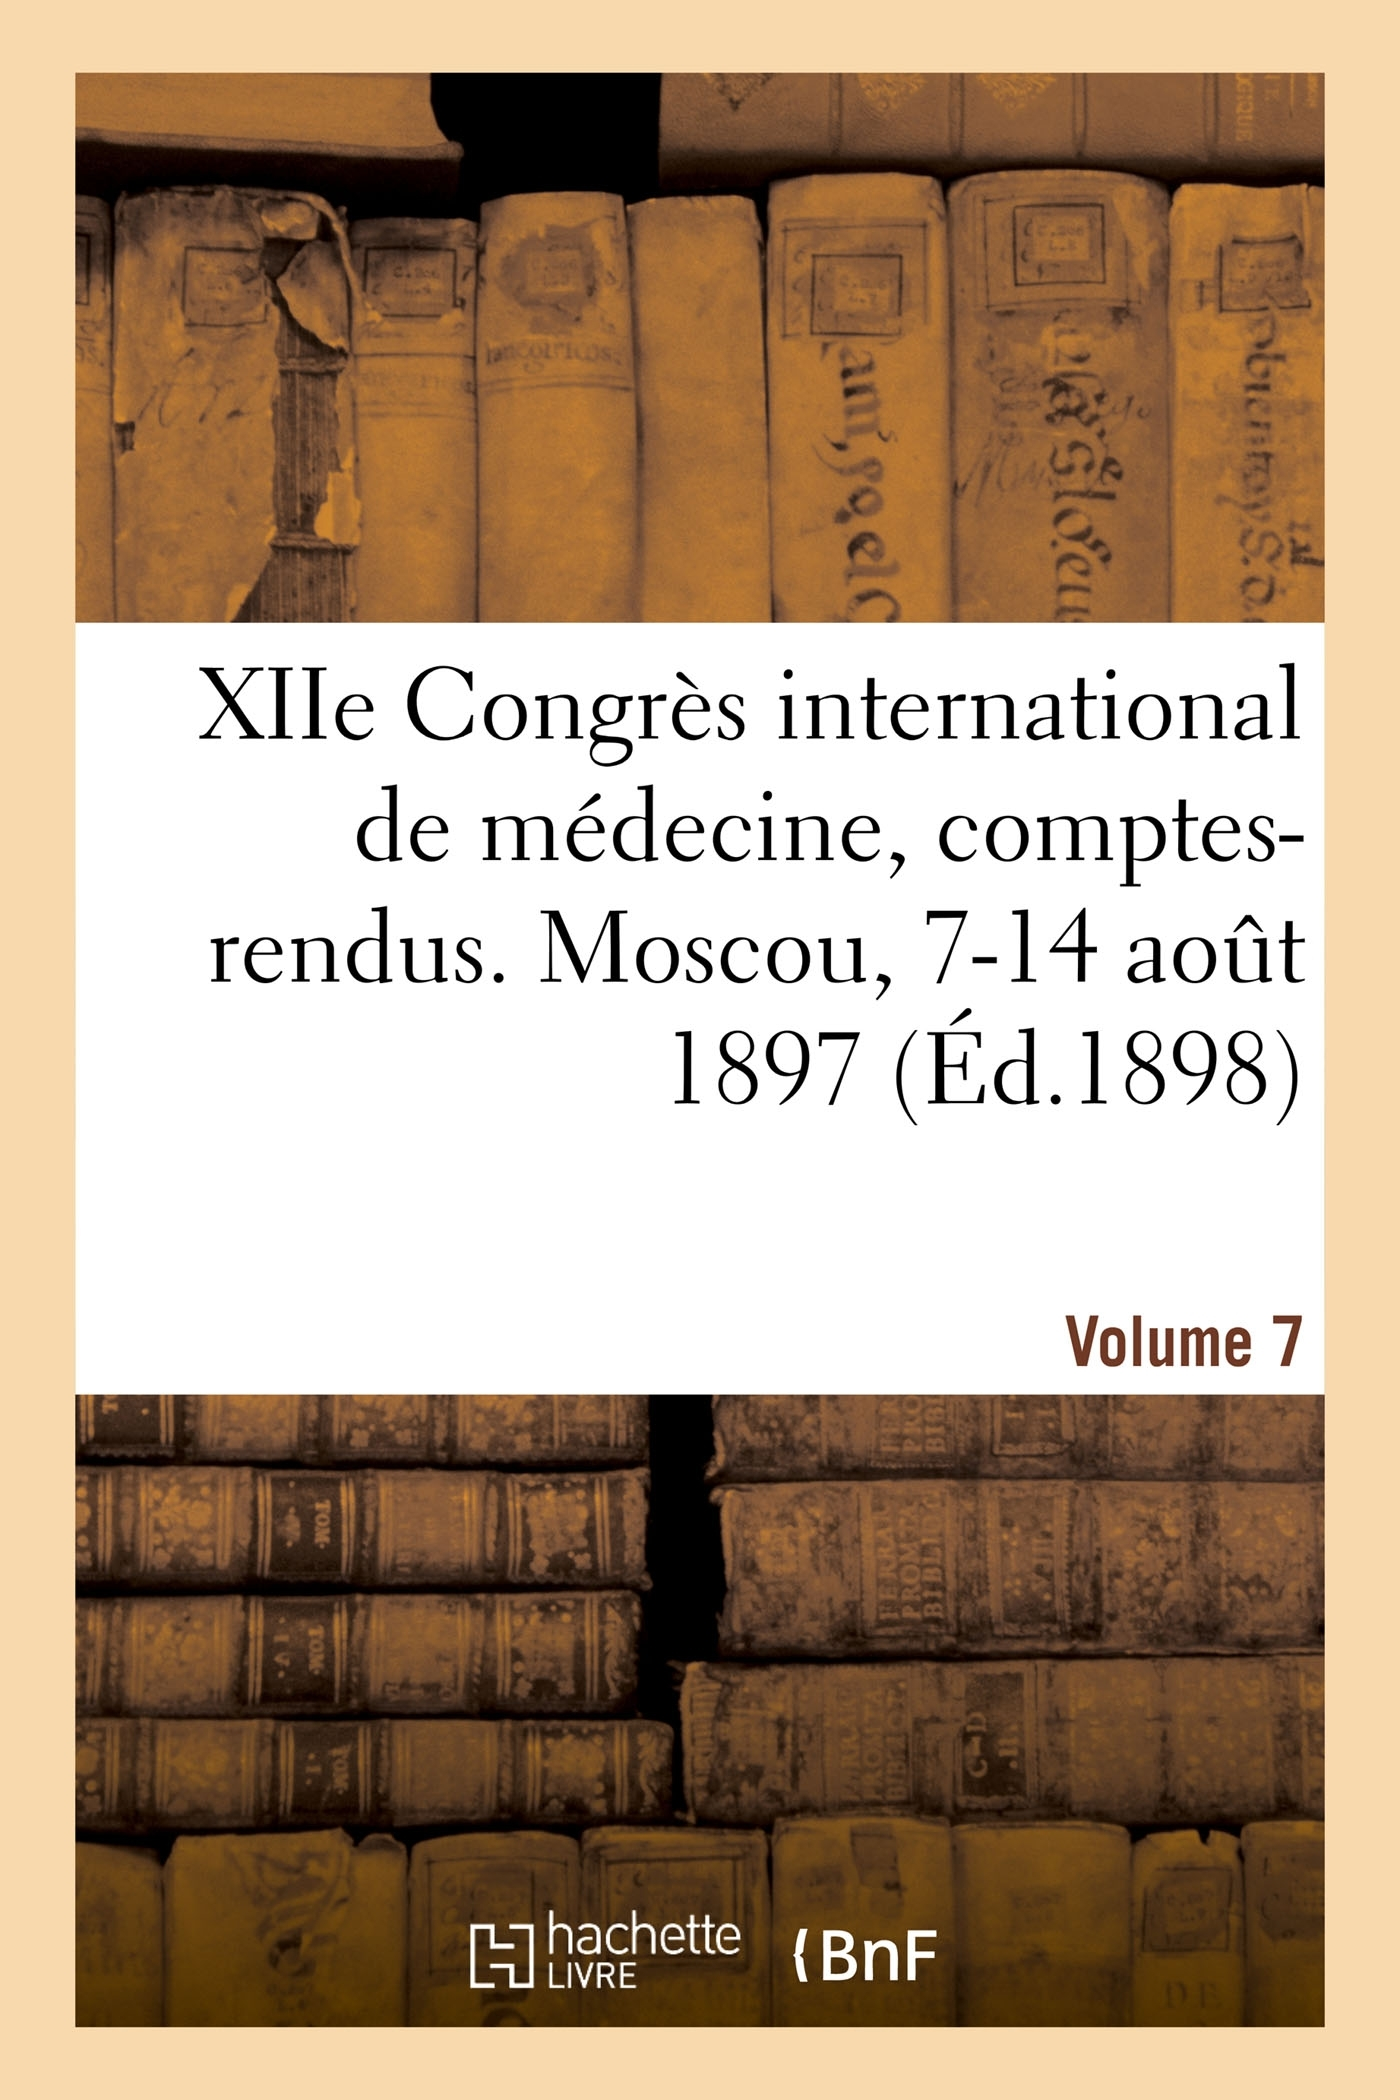 XIIE CONGRES INTERNATIONAL DE MEDECINE, COMPTES-RENDUS. MOSCOU, 7-14 AOUT 1897. VOLUME 7